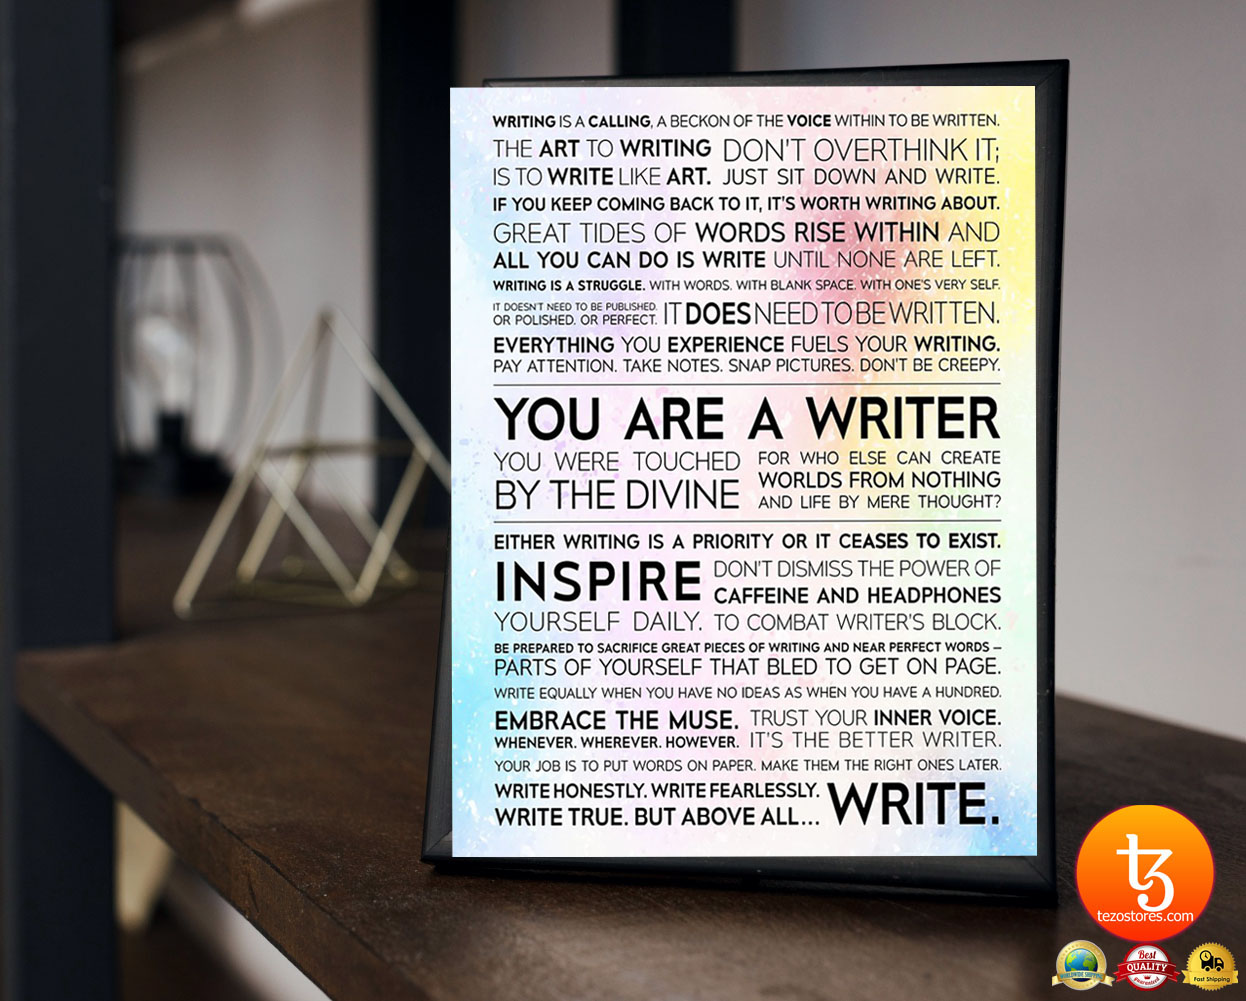 Writer Manifesto writing is a calling a beckon of the voice poster